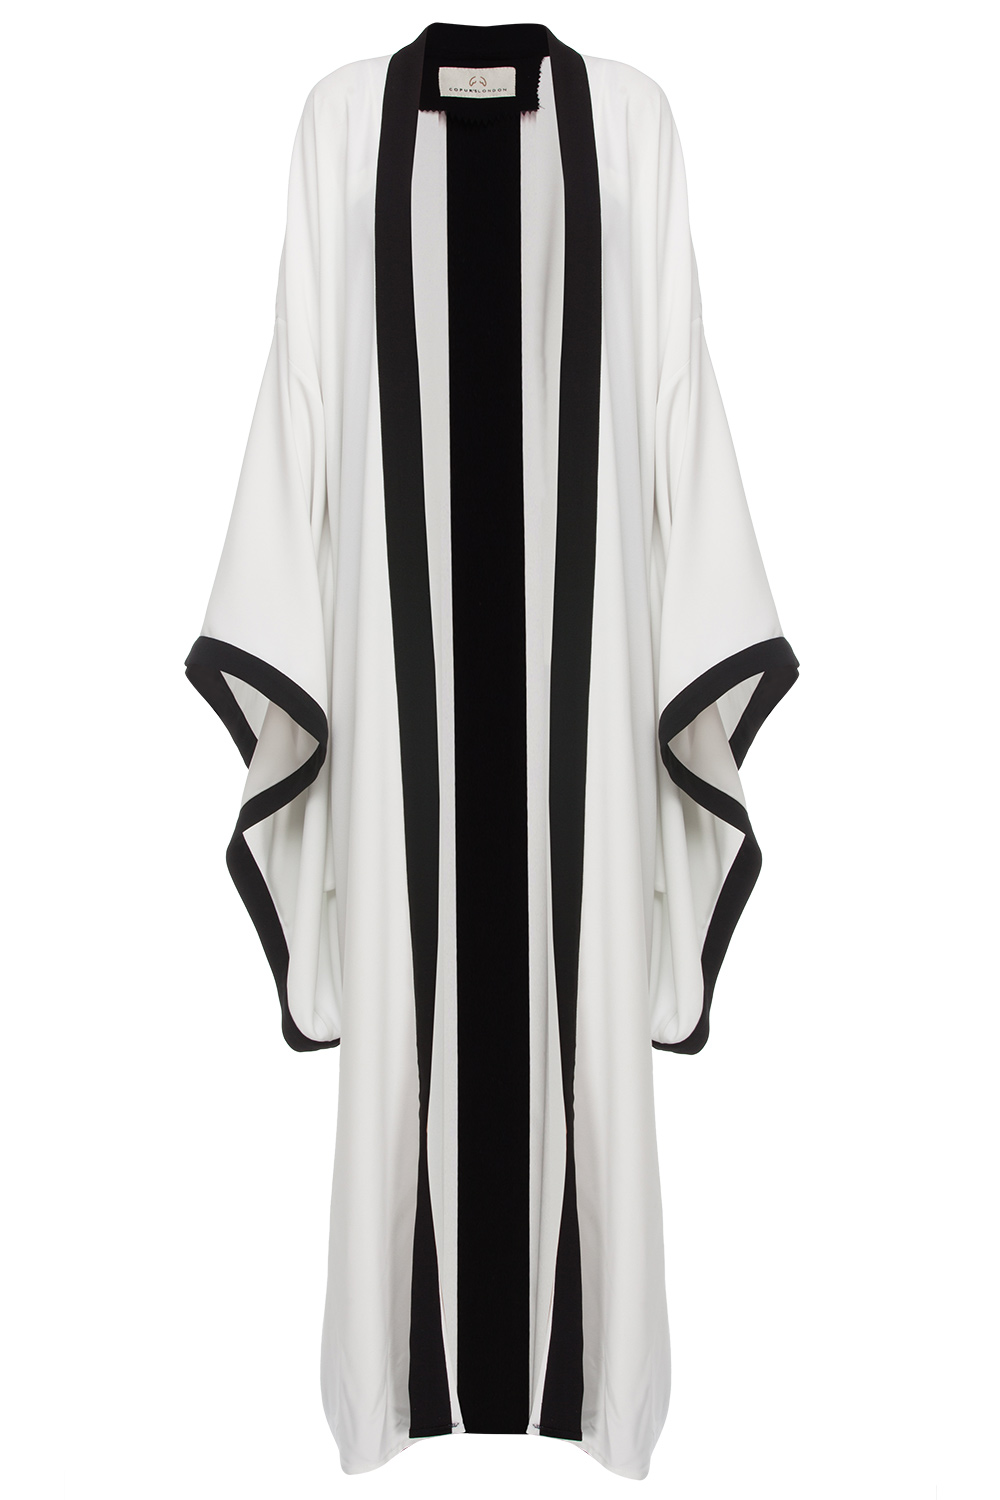 Copur S London Copurs Signature Kimono Black White 365ist